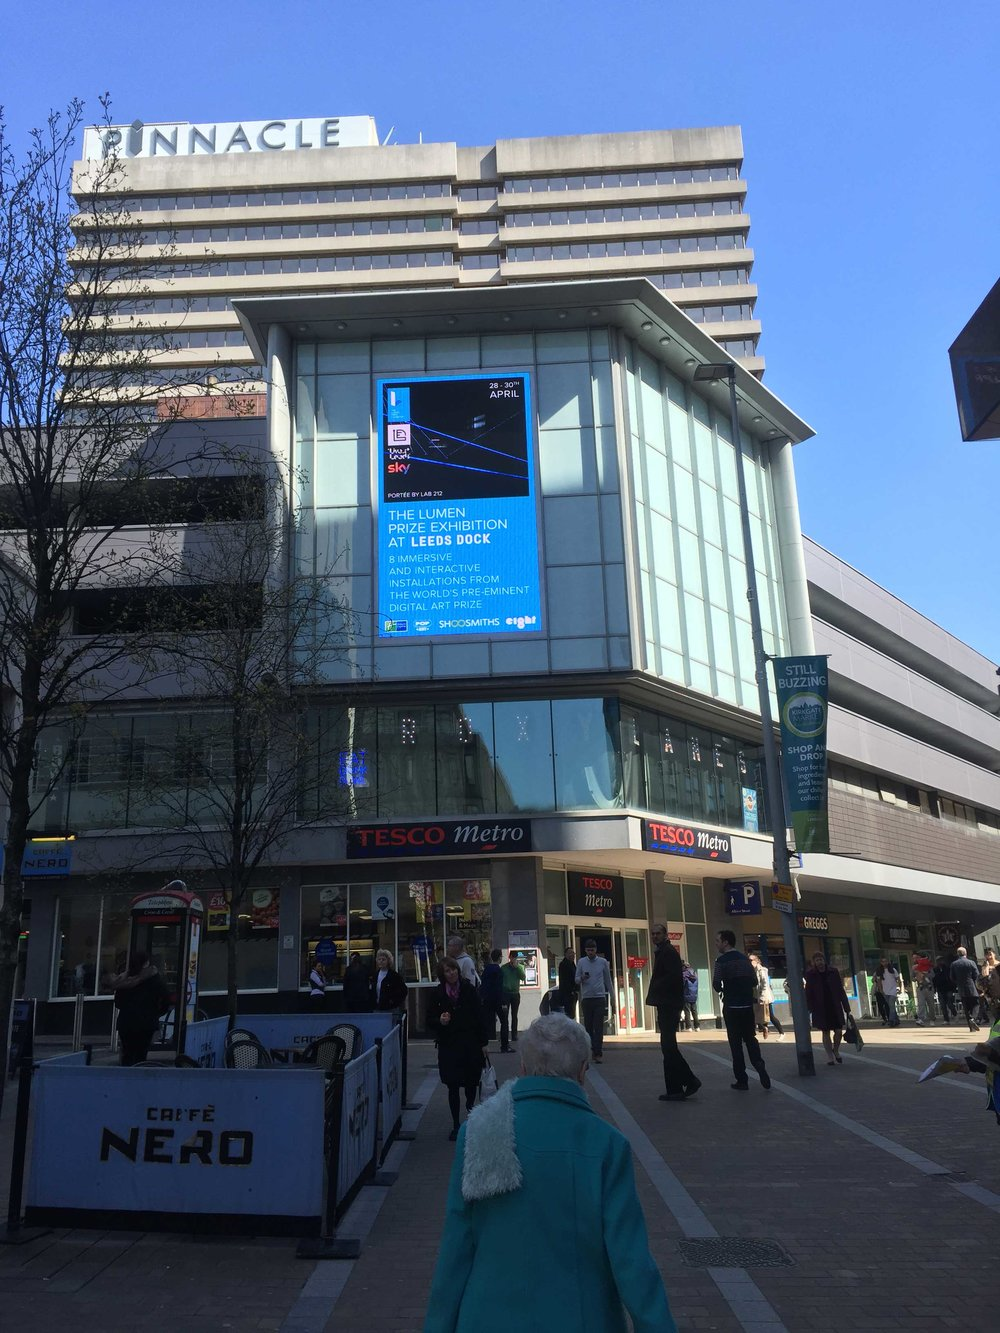 We produced a digital ad and embedded film and secured 3 weeks of free ad space at a central Leeds prominent screen.